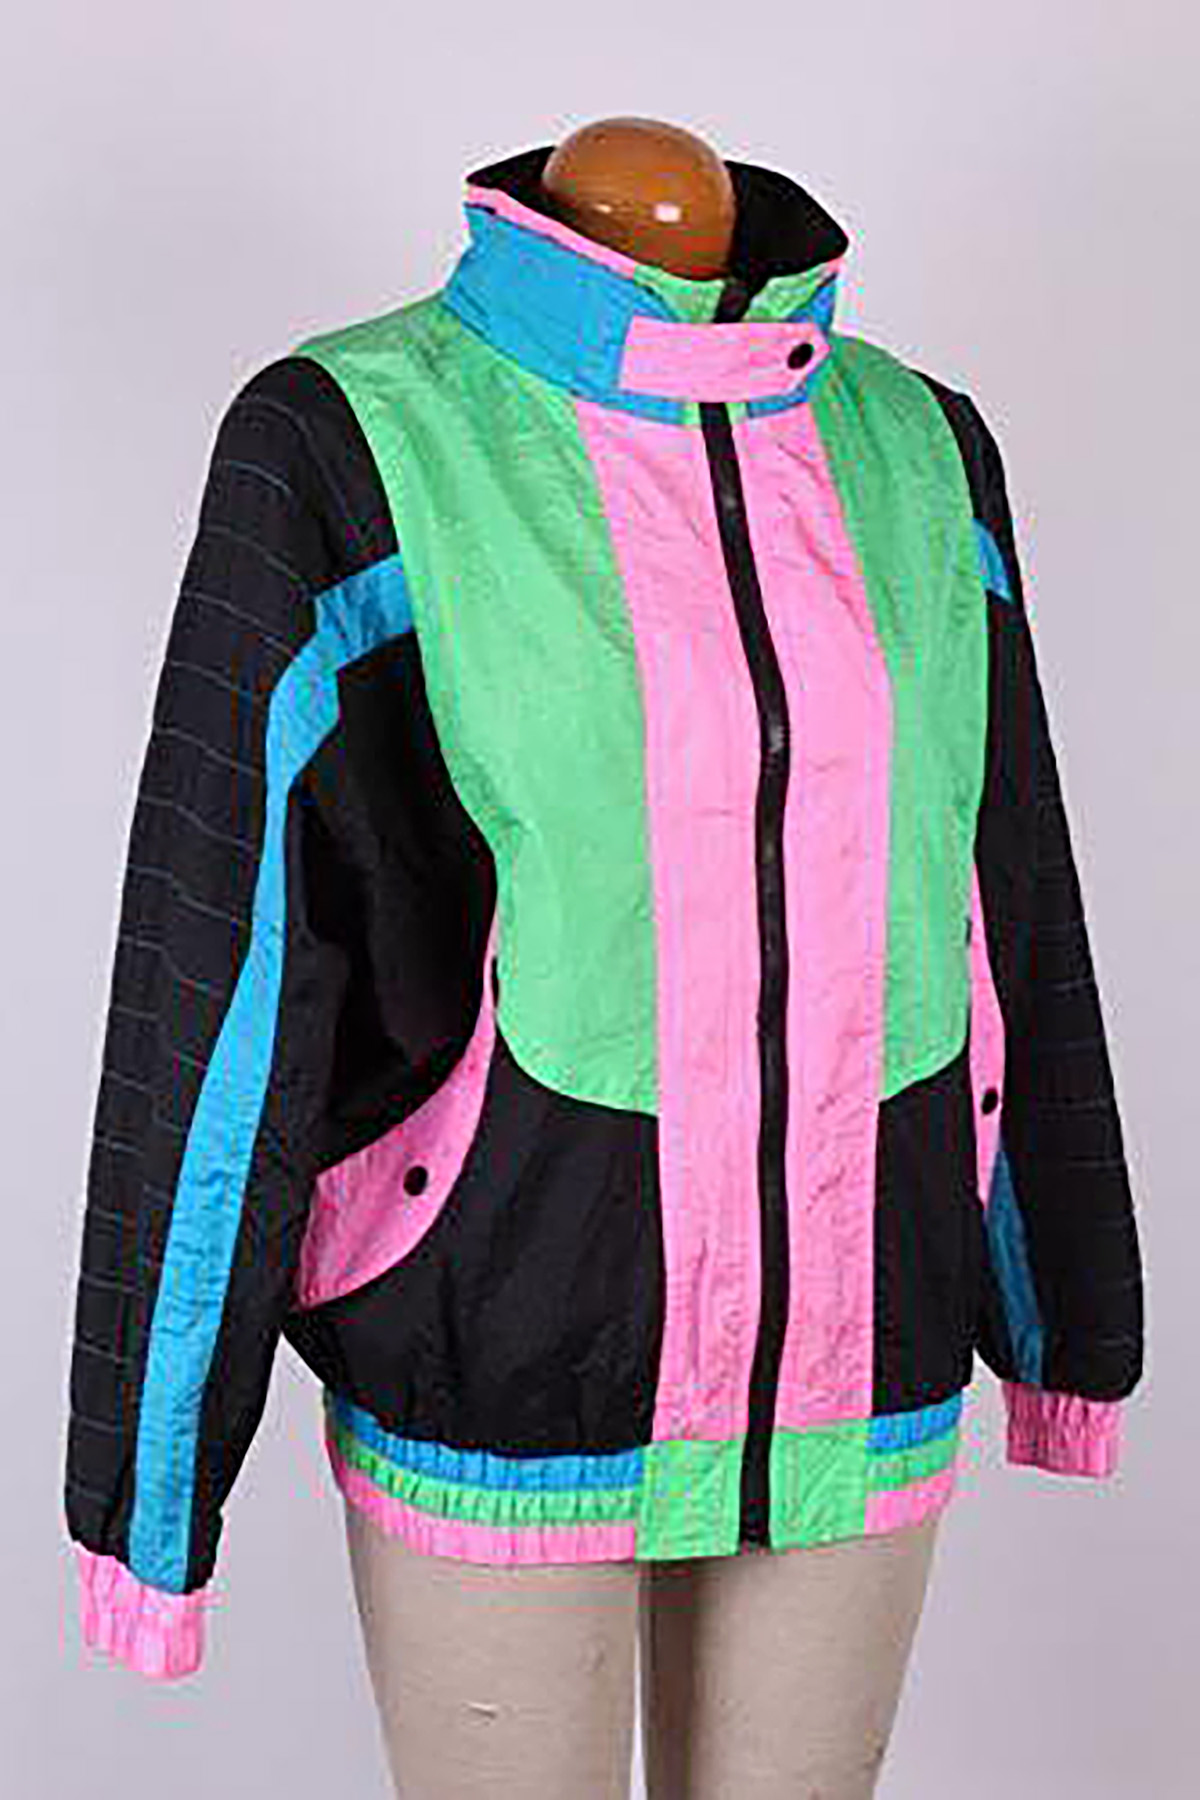 An 80s style tracksuit jacket on a mannequin. It's black, pink, sky blue, and apple green.